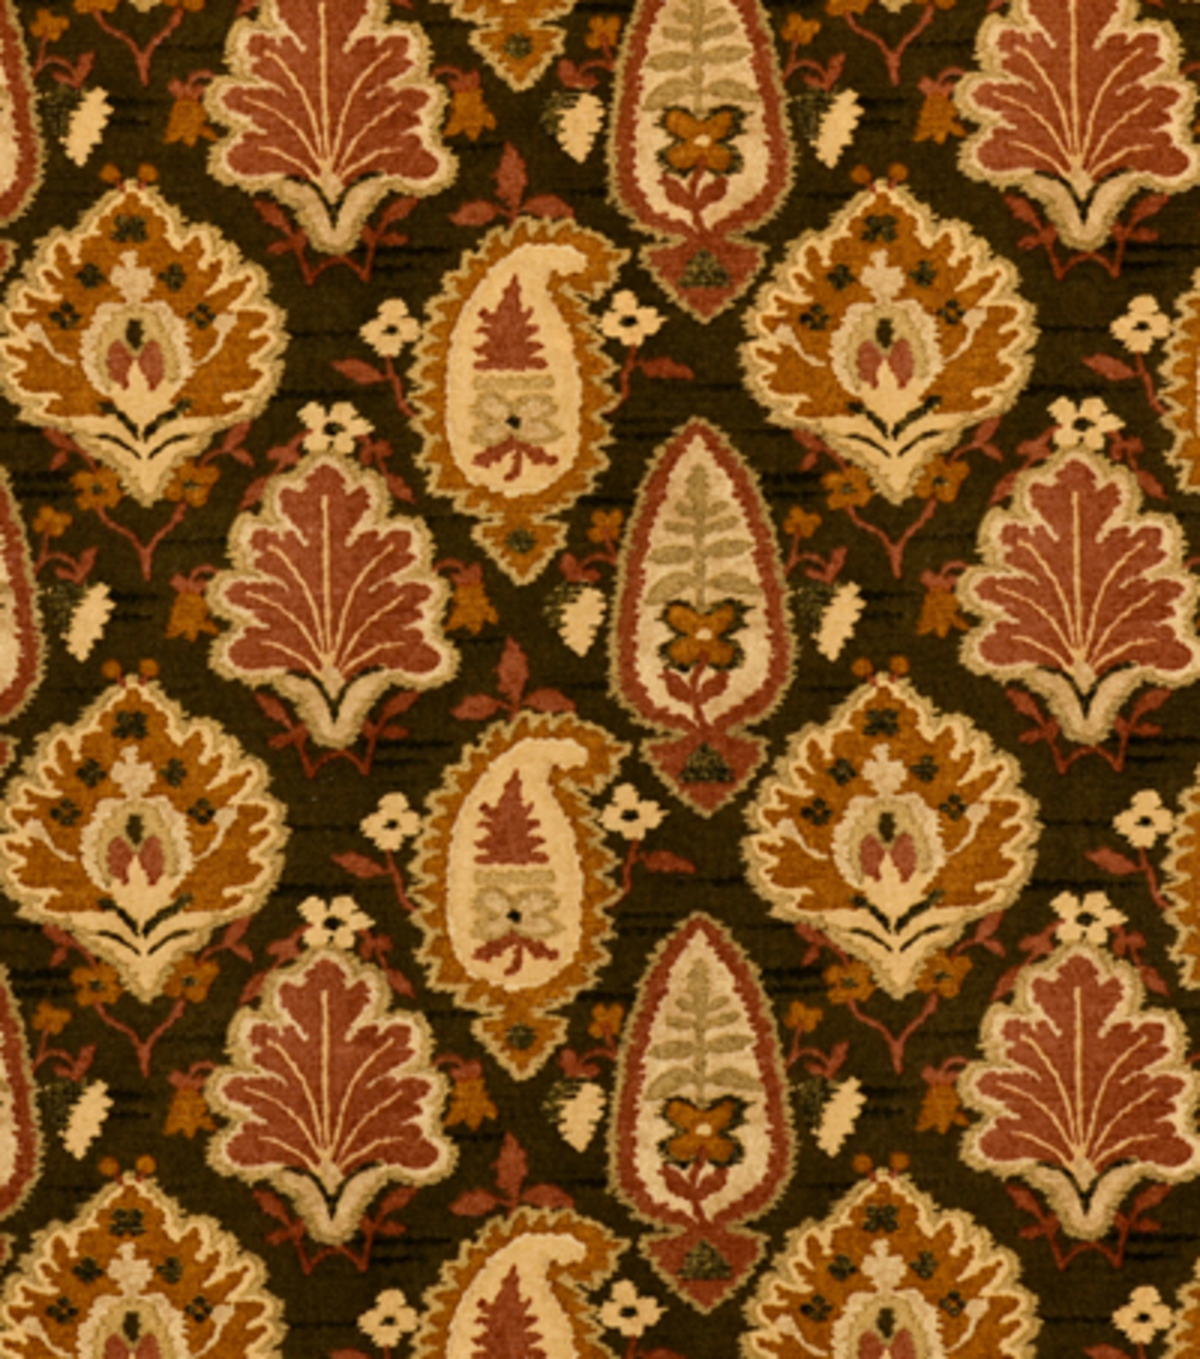 Home Decor 8\u0022x8\u0022 Fabric Swatch-Covington Medina 61 Autumn